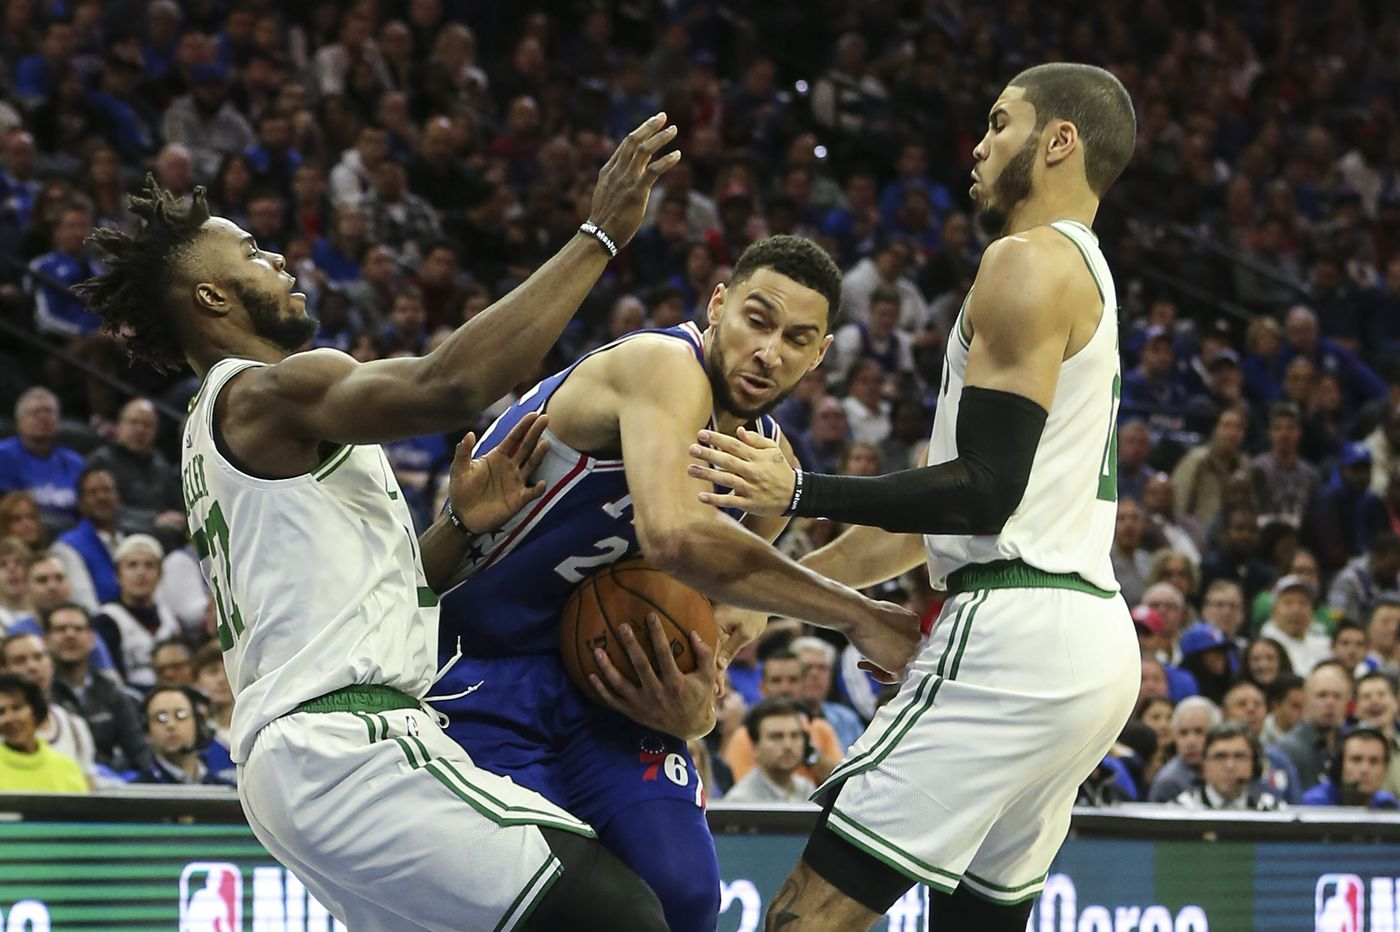 Sixers 107, Celtics 93: Ben Simmons leads season-opening victory against division rival